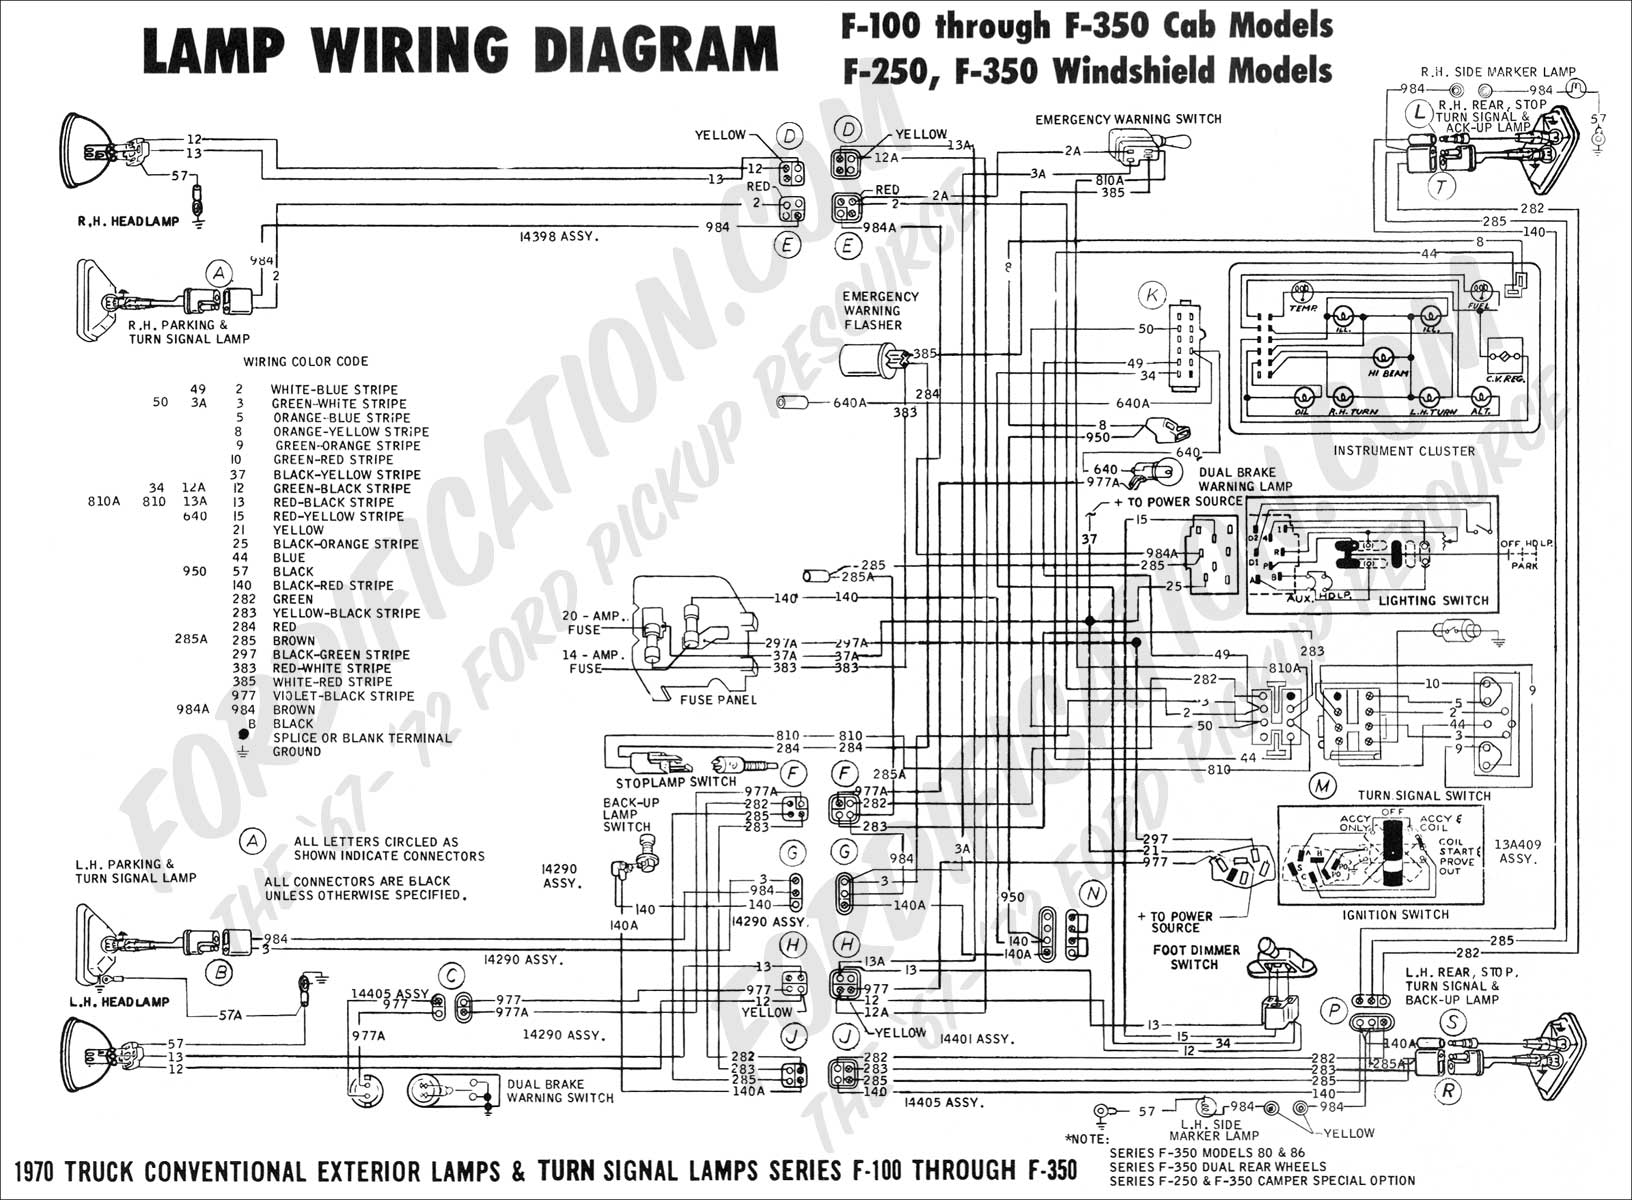 wiring diagram_70ext lights01 ford truck technical drawings and schematics section h wiring 73 ford f250 wiring diagram at nearapp.co